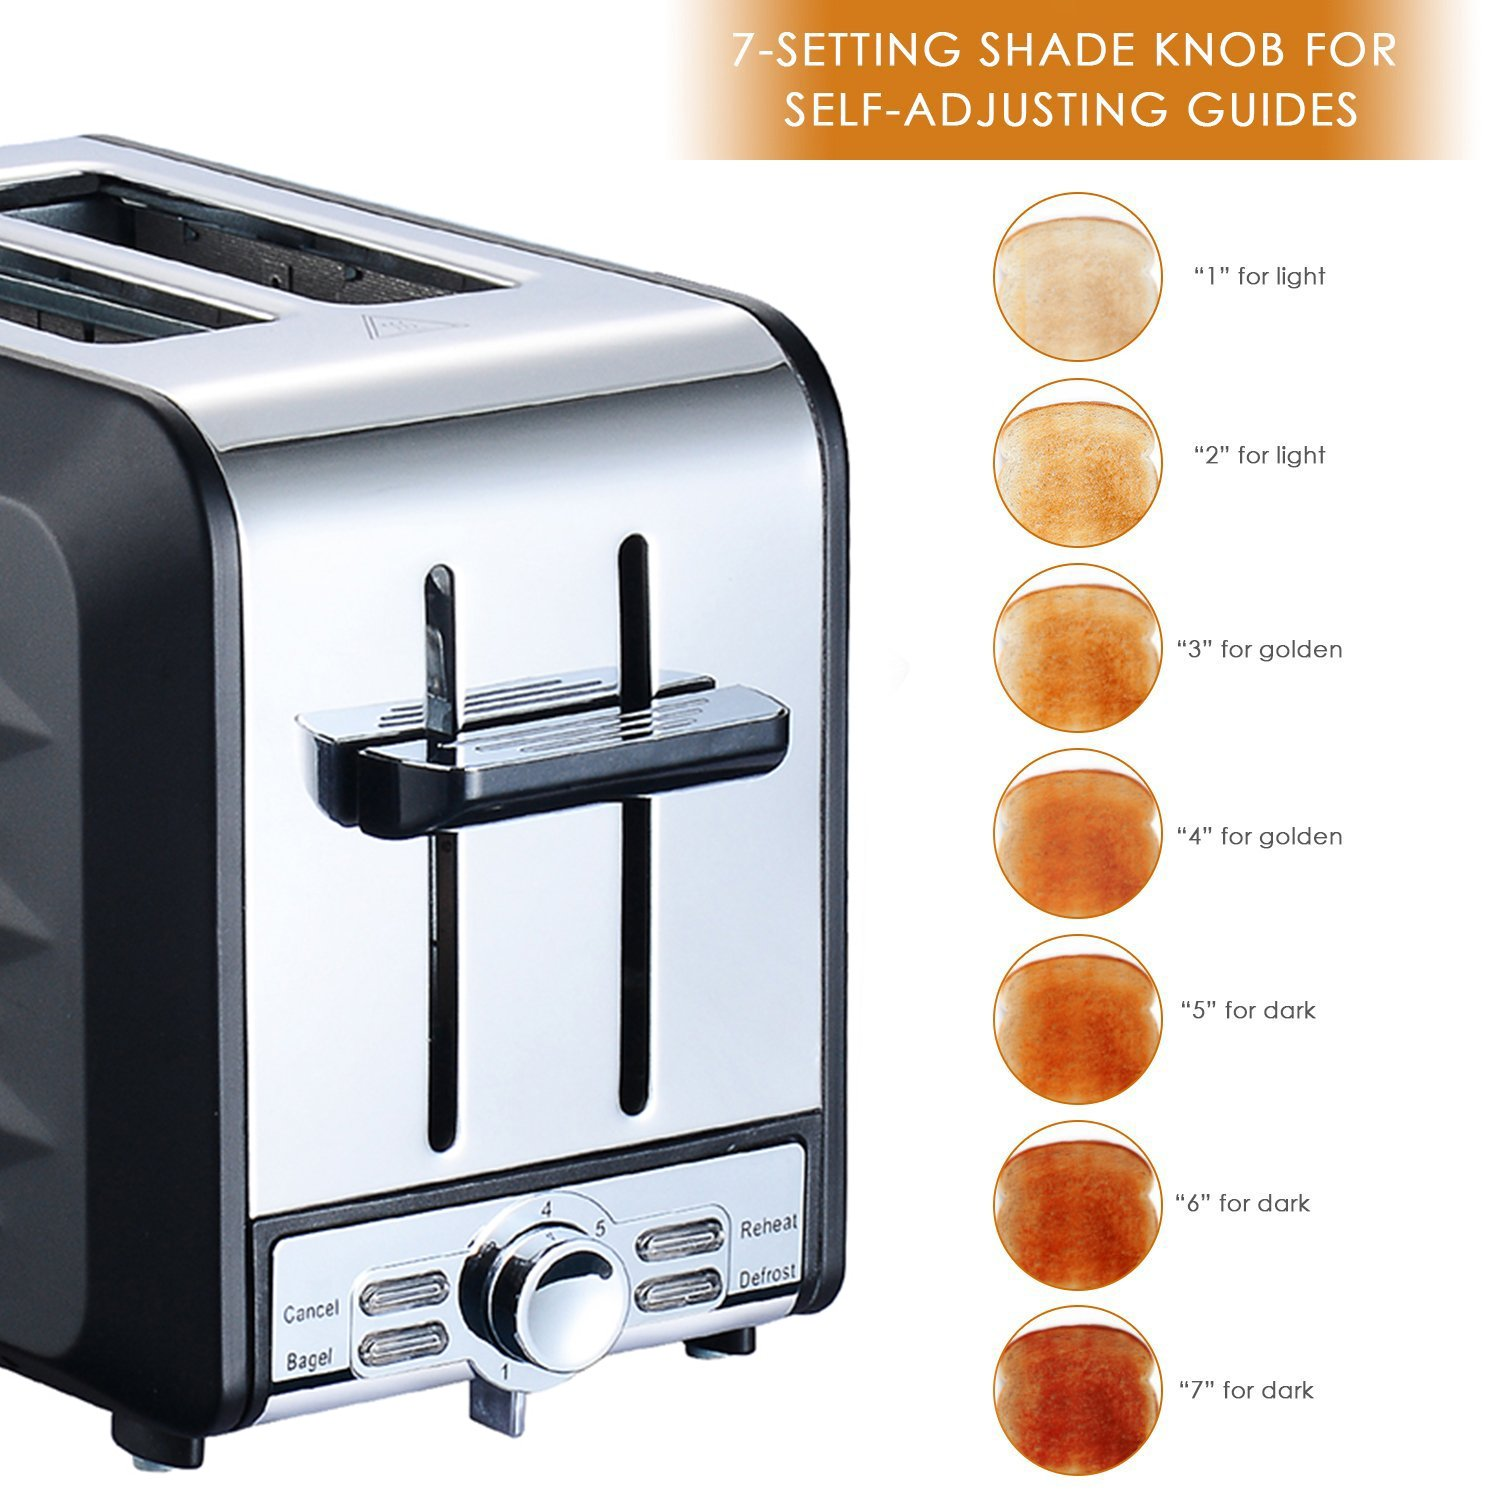 Fortune Candy Stainless Steel 2 Slices toaster, black toaster With Extra Wide Slot, 7-Shade Control by Fortune Candy (Image #3)